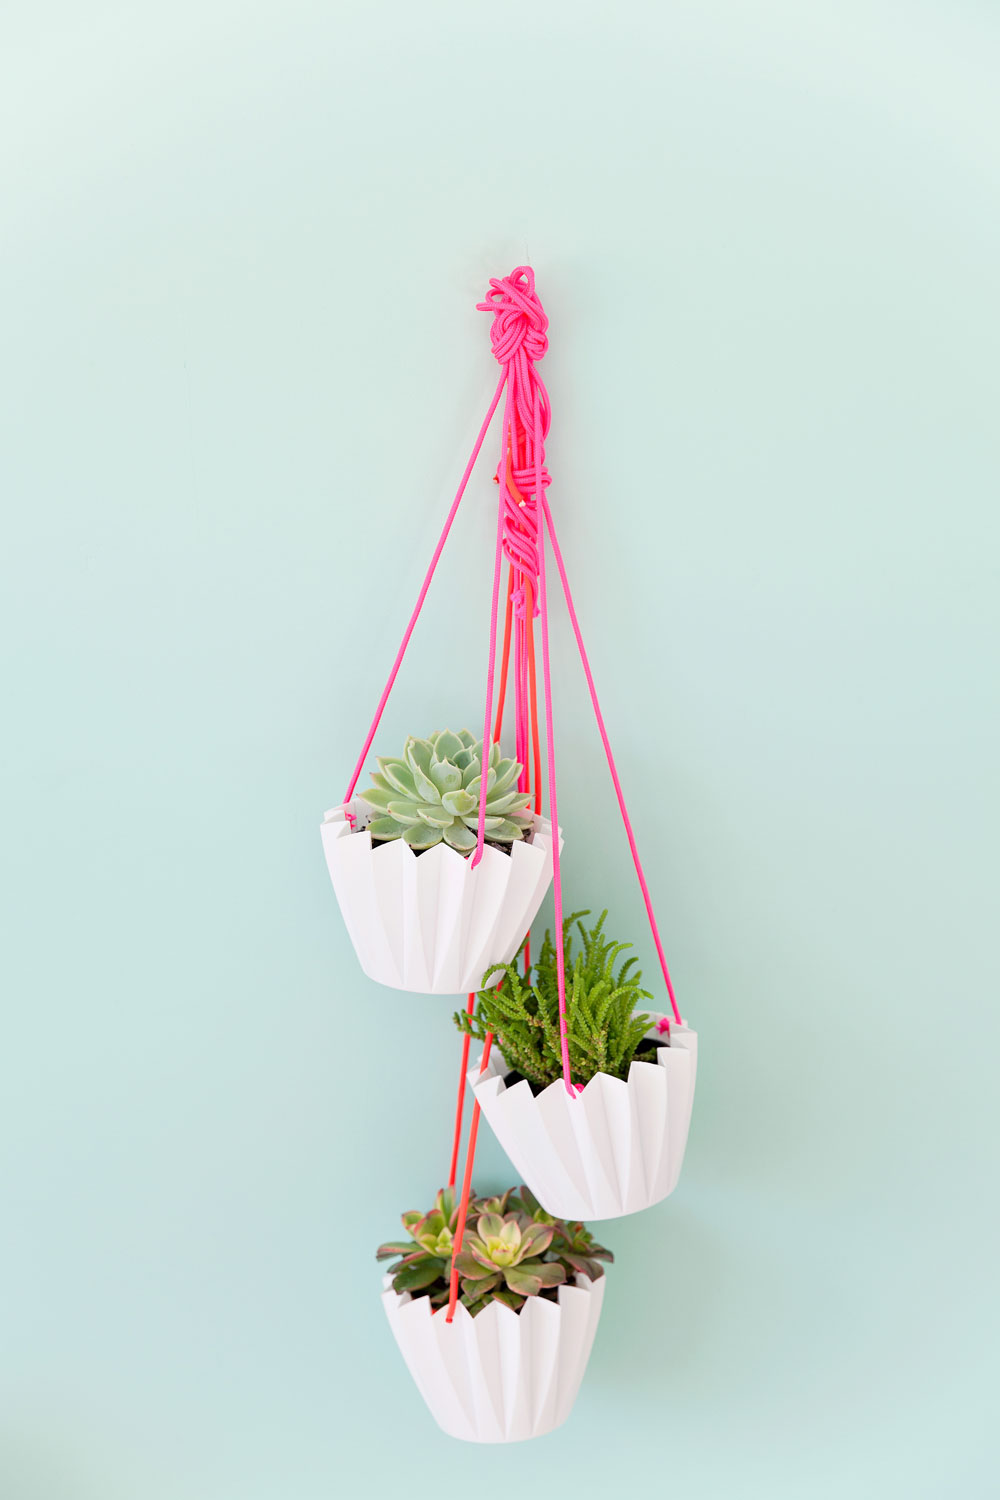 5 min DIY! These hanging planters only take a few mintues and are water resistant only $5 and are so much fun!